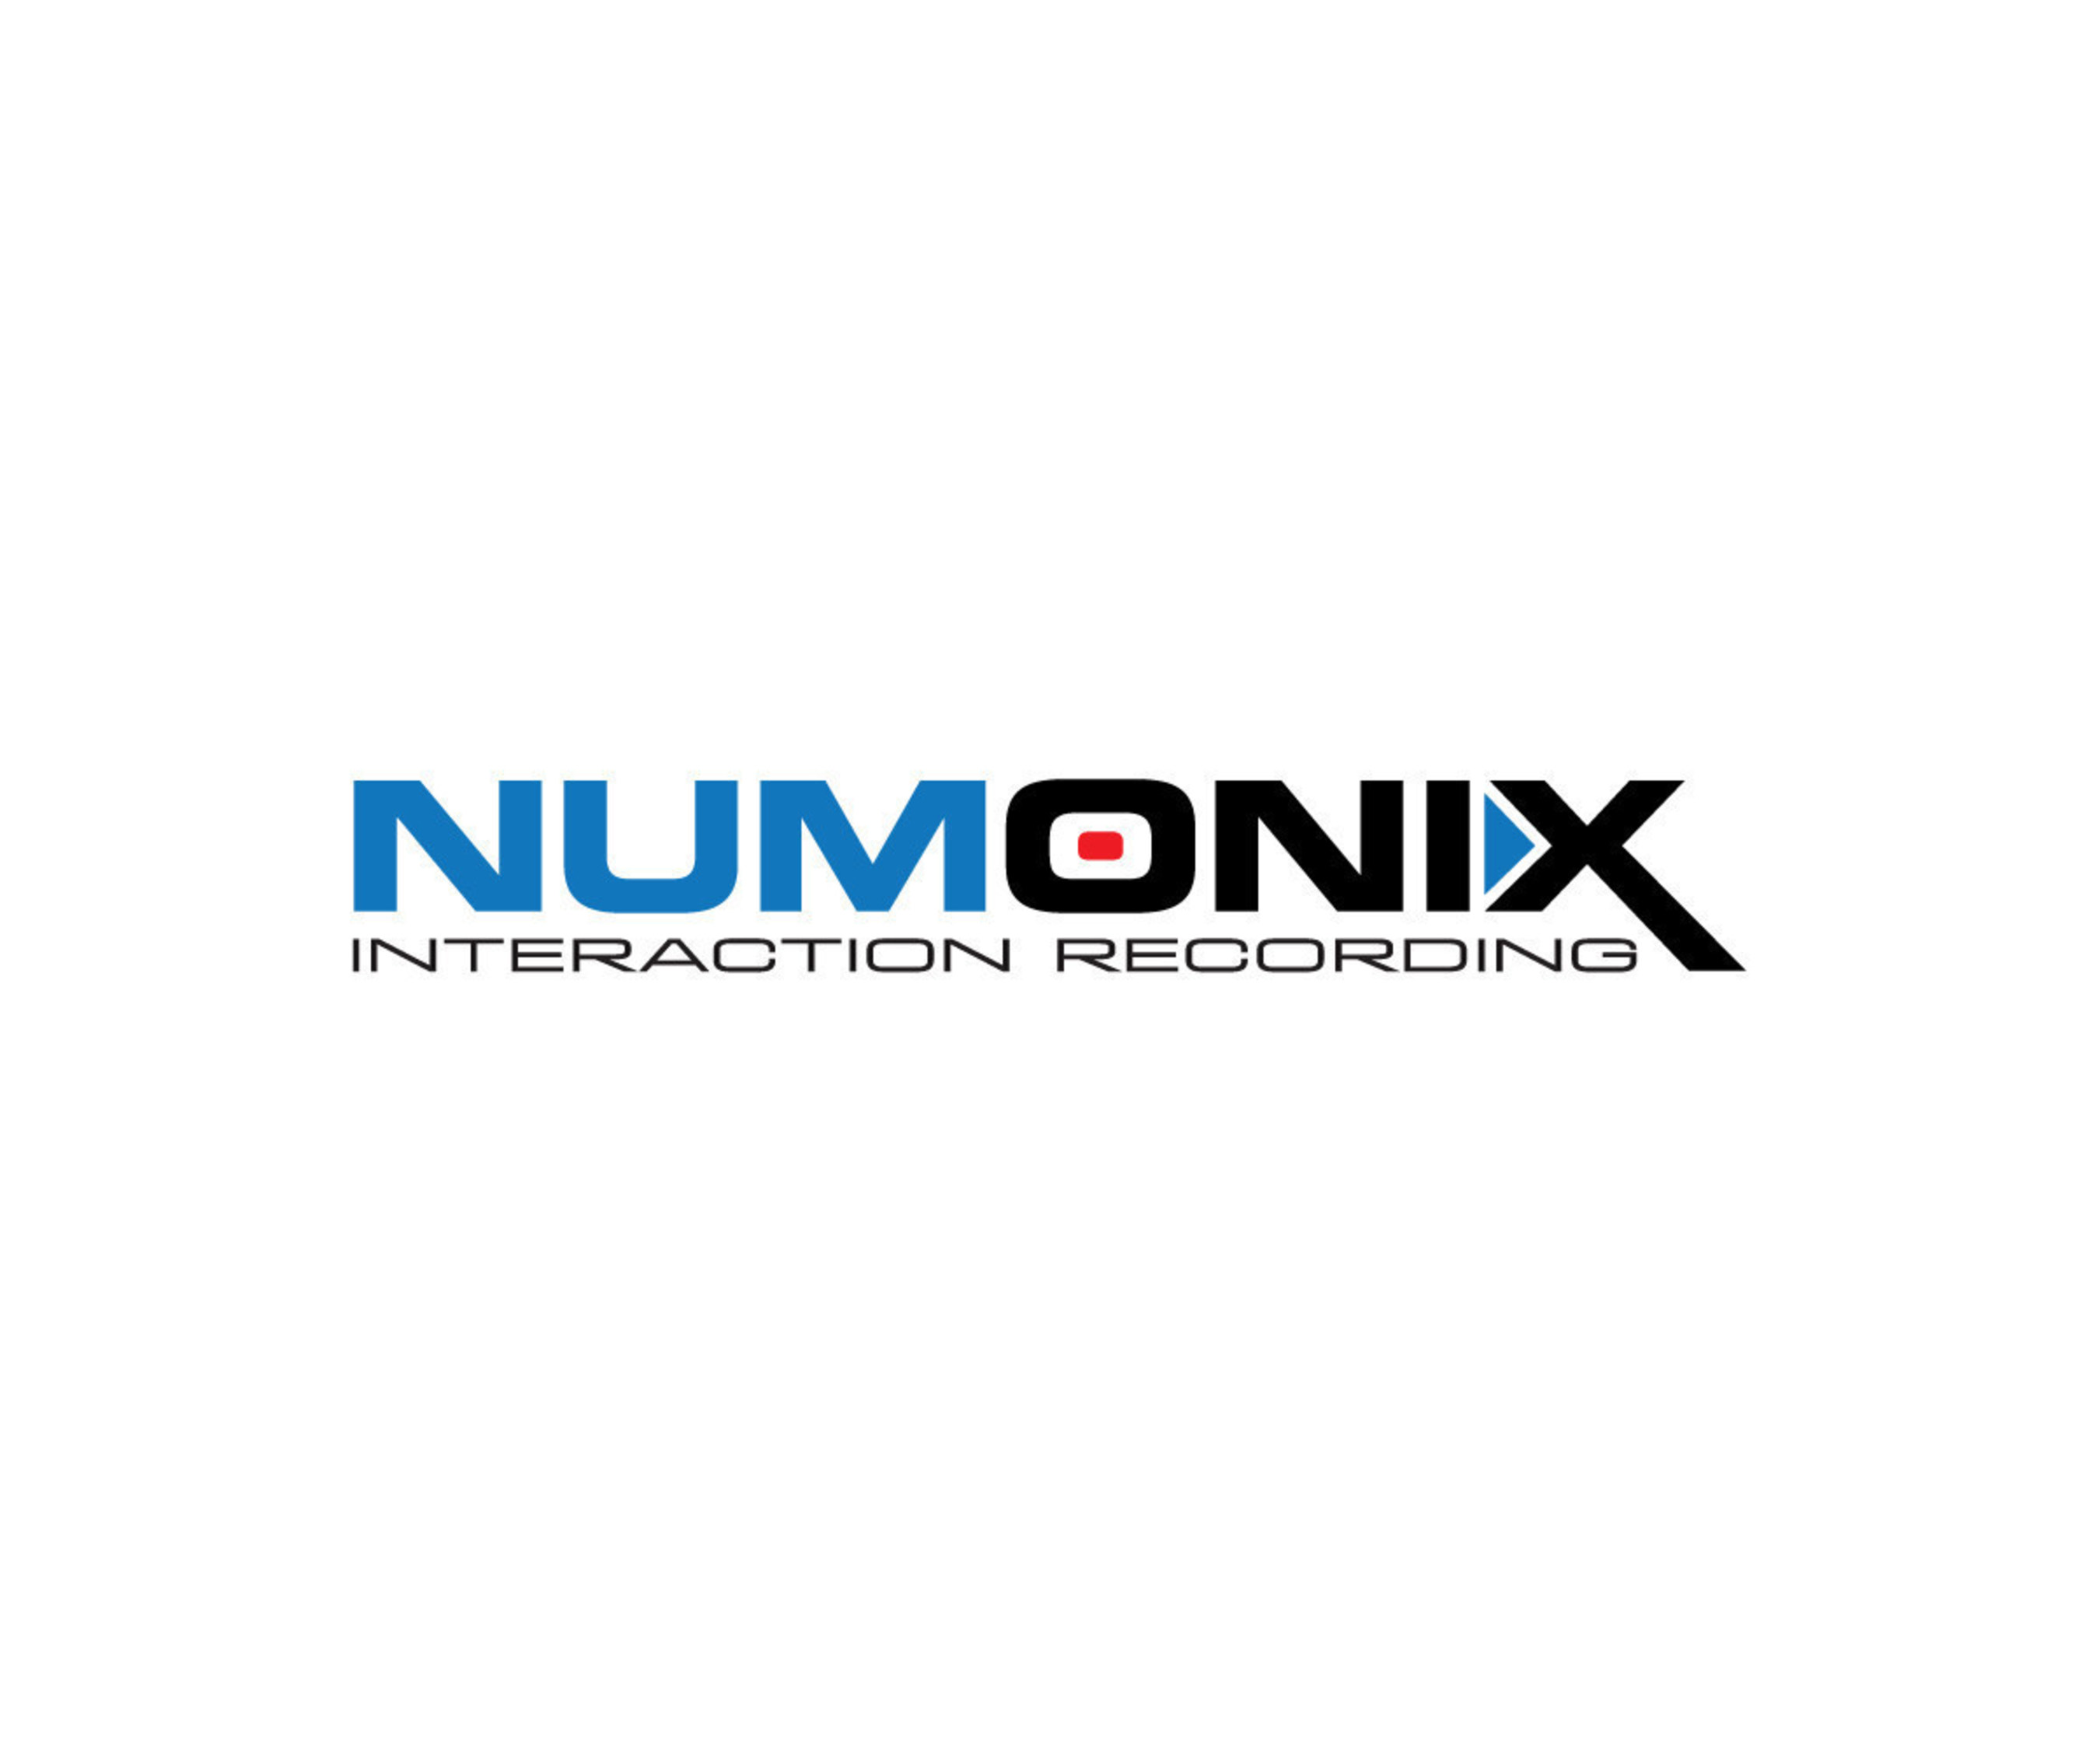 Numonix Awarded Skype for Business Certification From Microsoft for RECITE Interaction Recording Solution